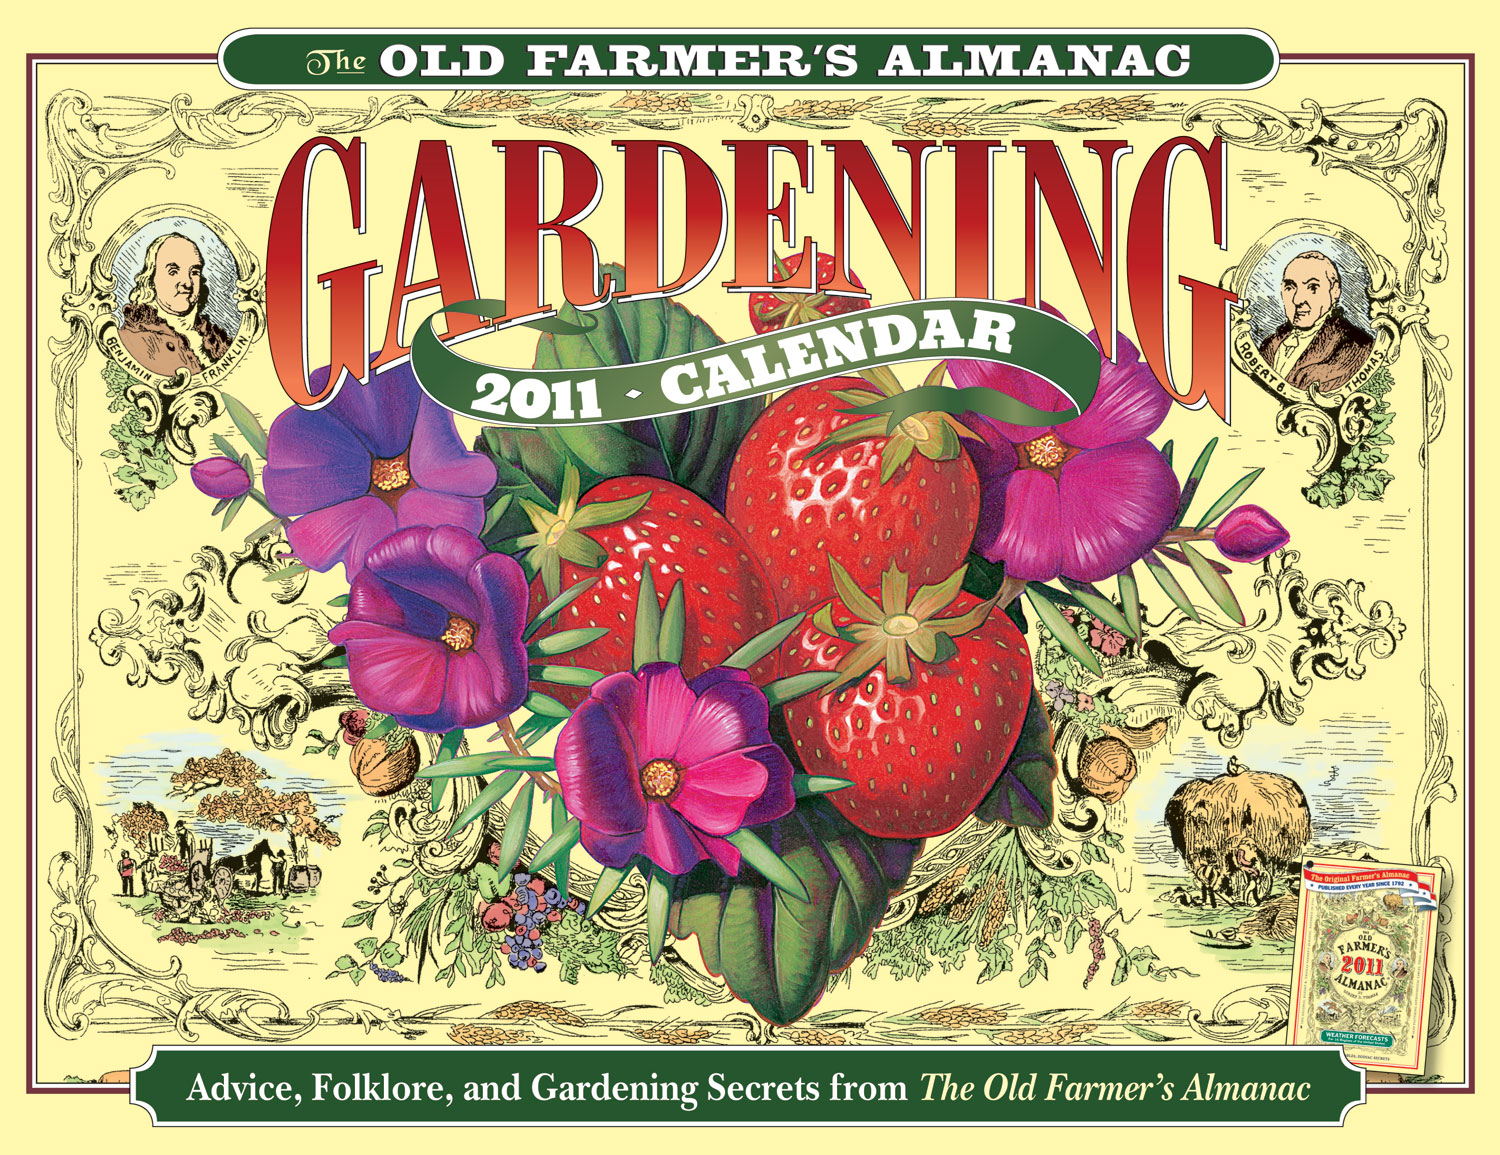 Promotional Images for Calendars and Books | The Old Farmer's Almanac